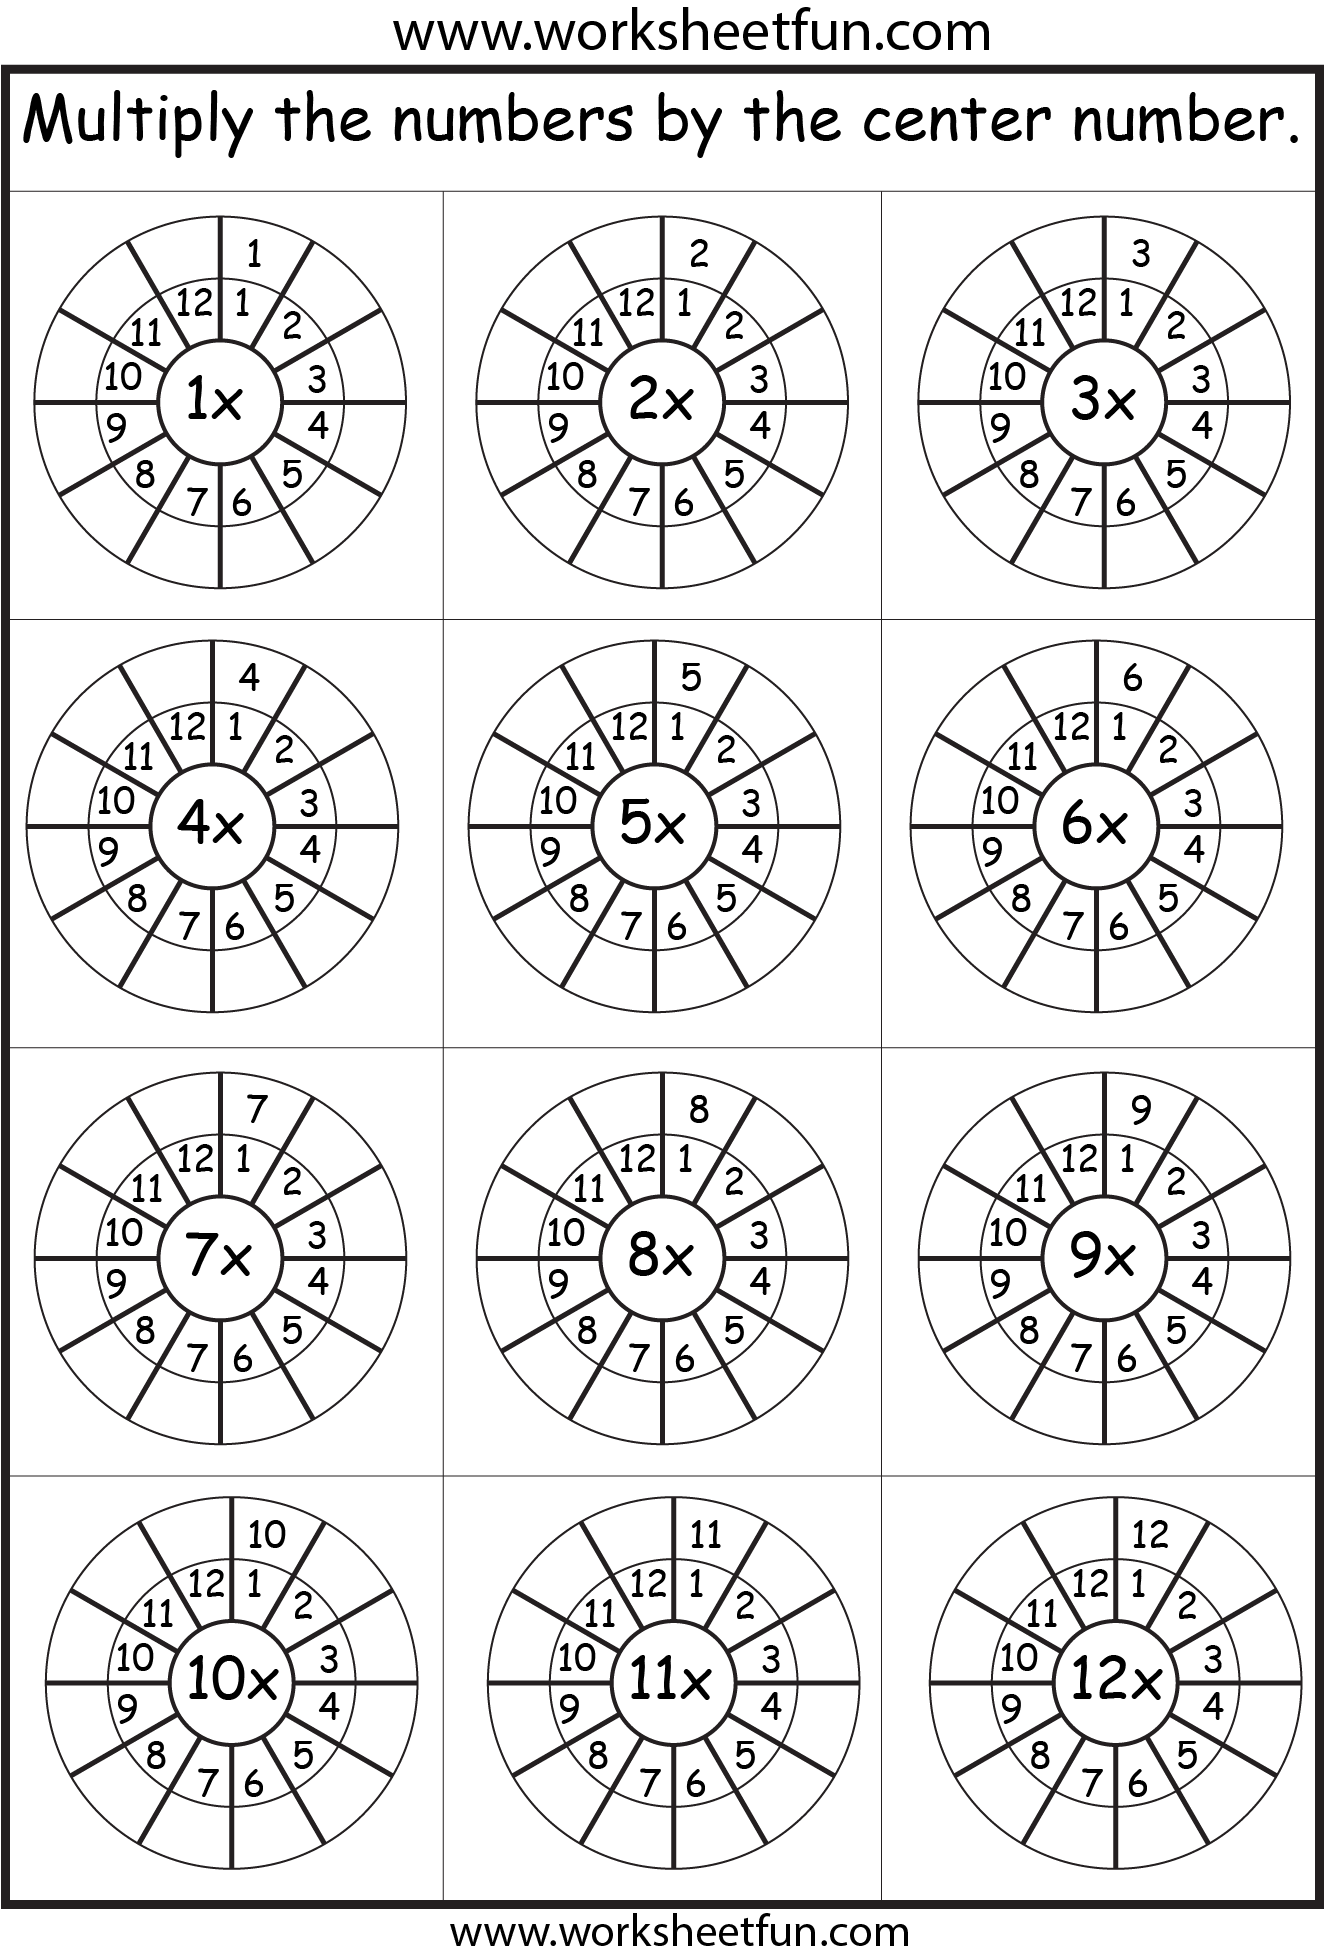 Times Table 2 12 Worksheets 1 2 3 4 5 6 7 8 9 10 11